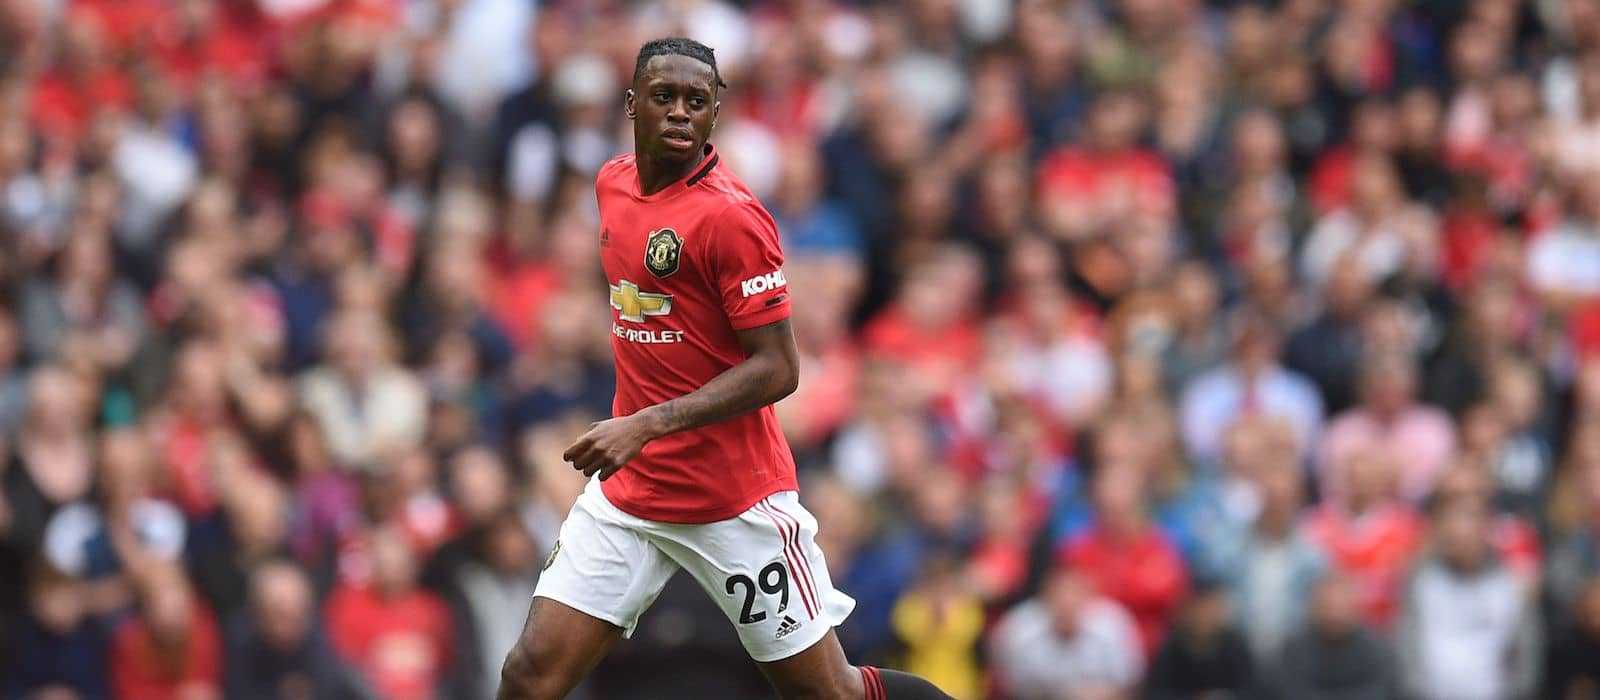 Manchester United fans heap praise on monumental Aaron Wan-Bissaka performance against Manchester City